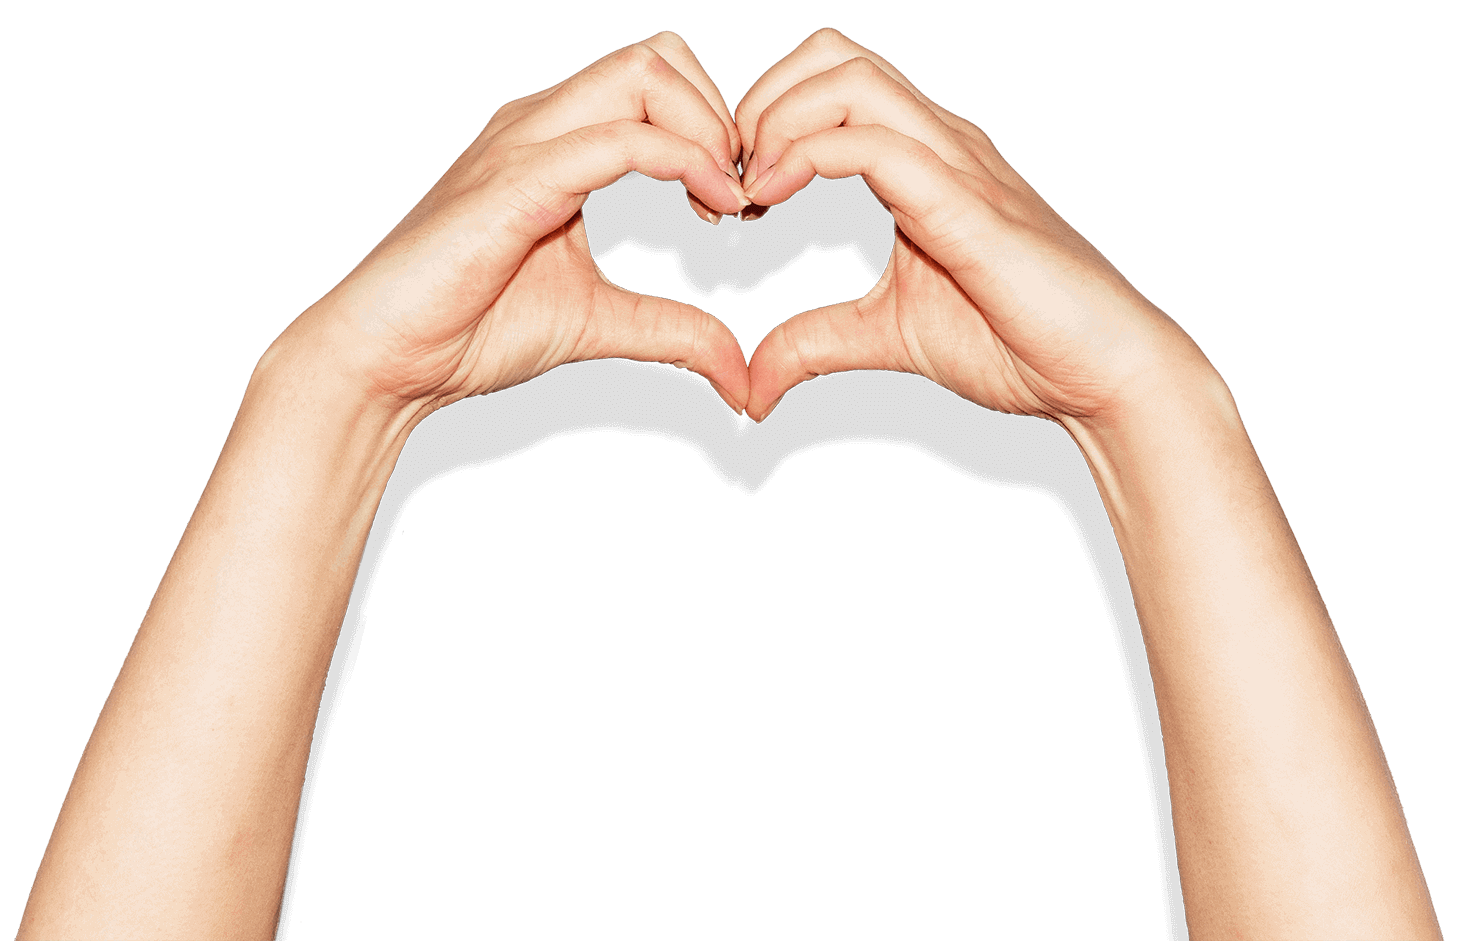 Hands in a heart shape represent the support Xero offers to businesses affected by the pandemic.